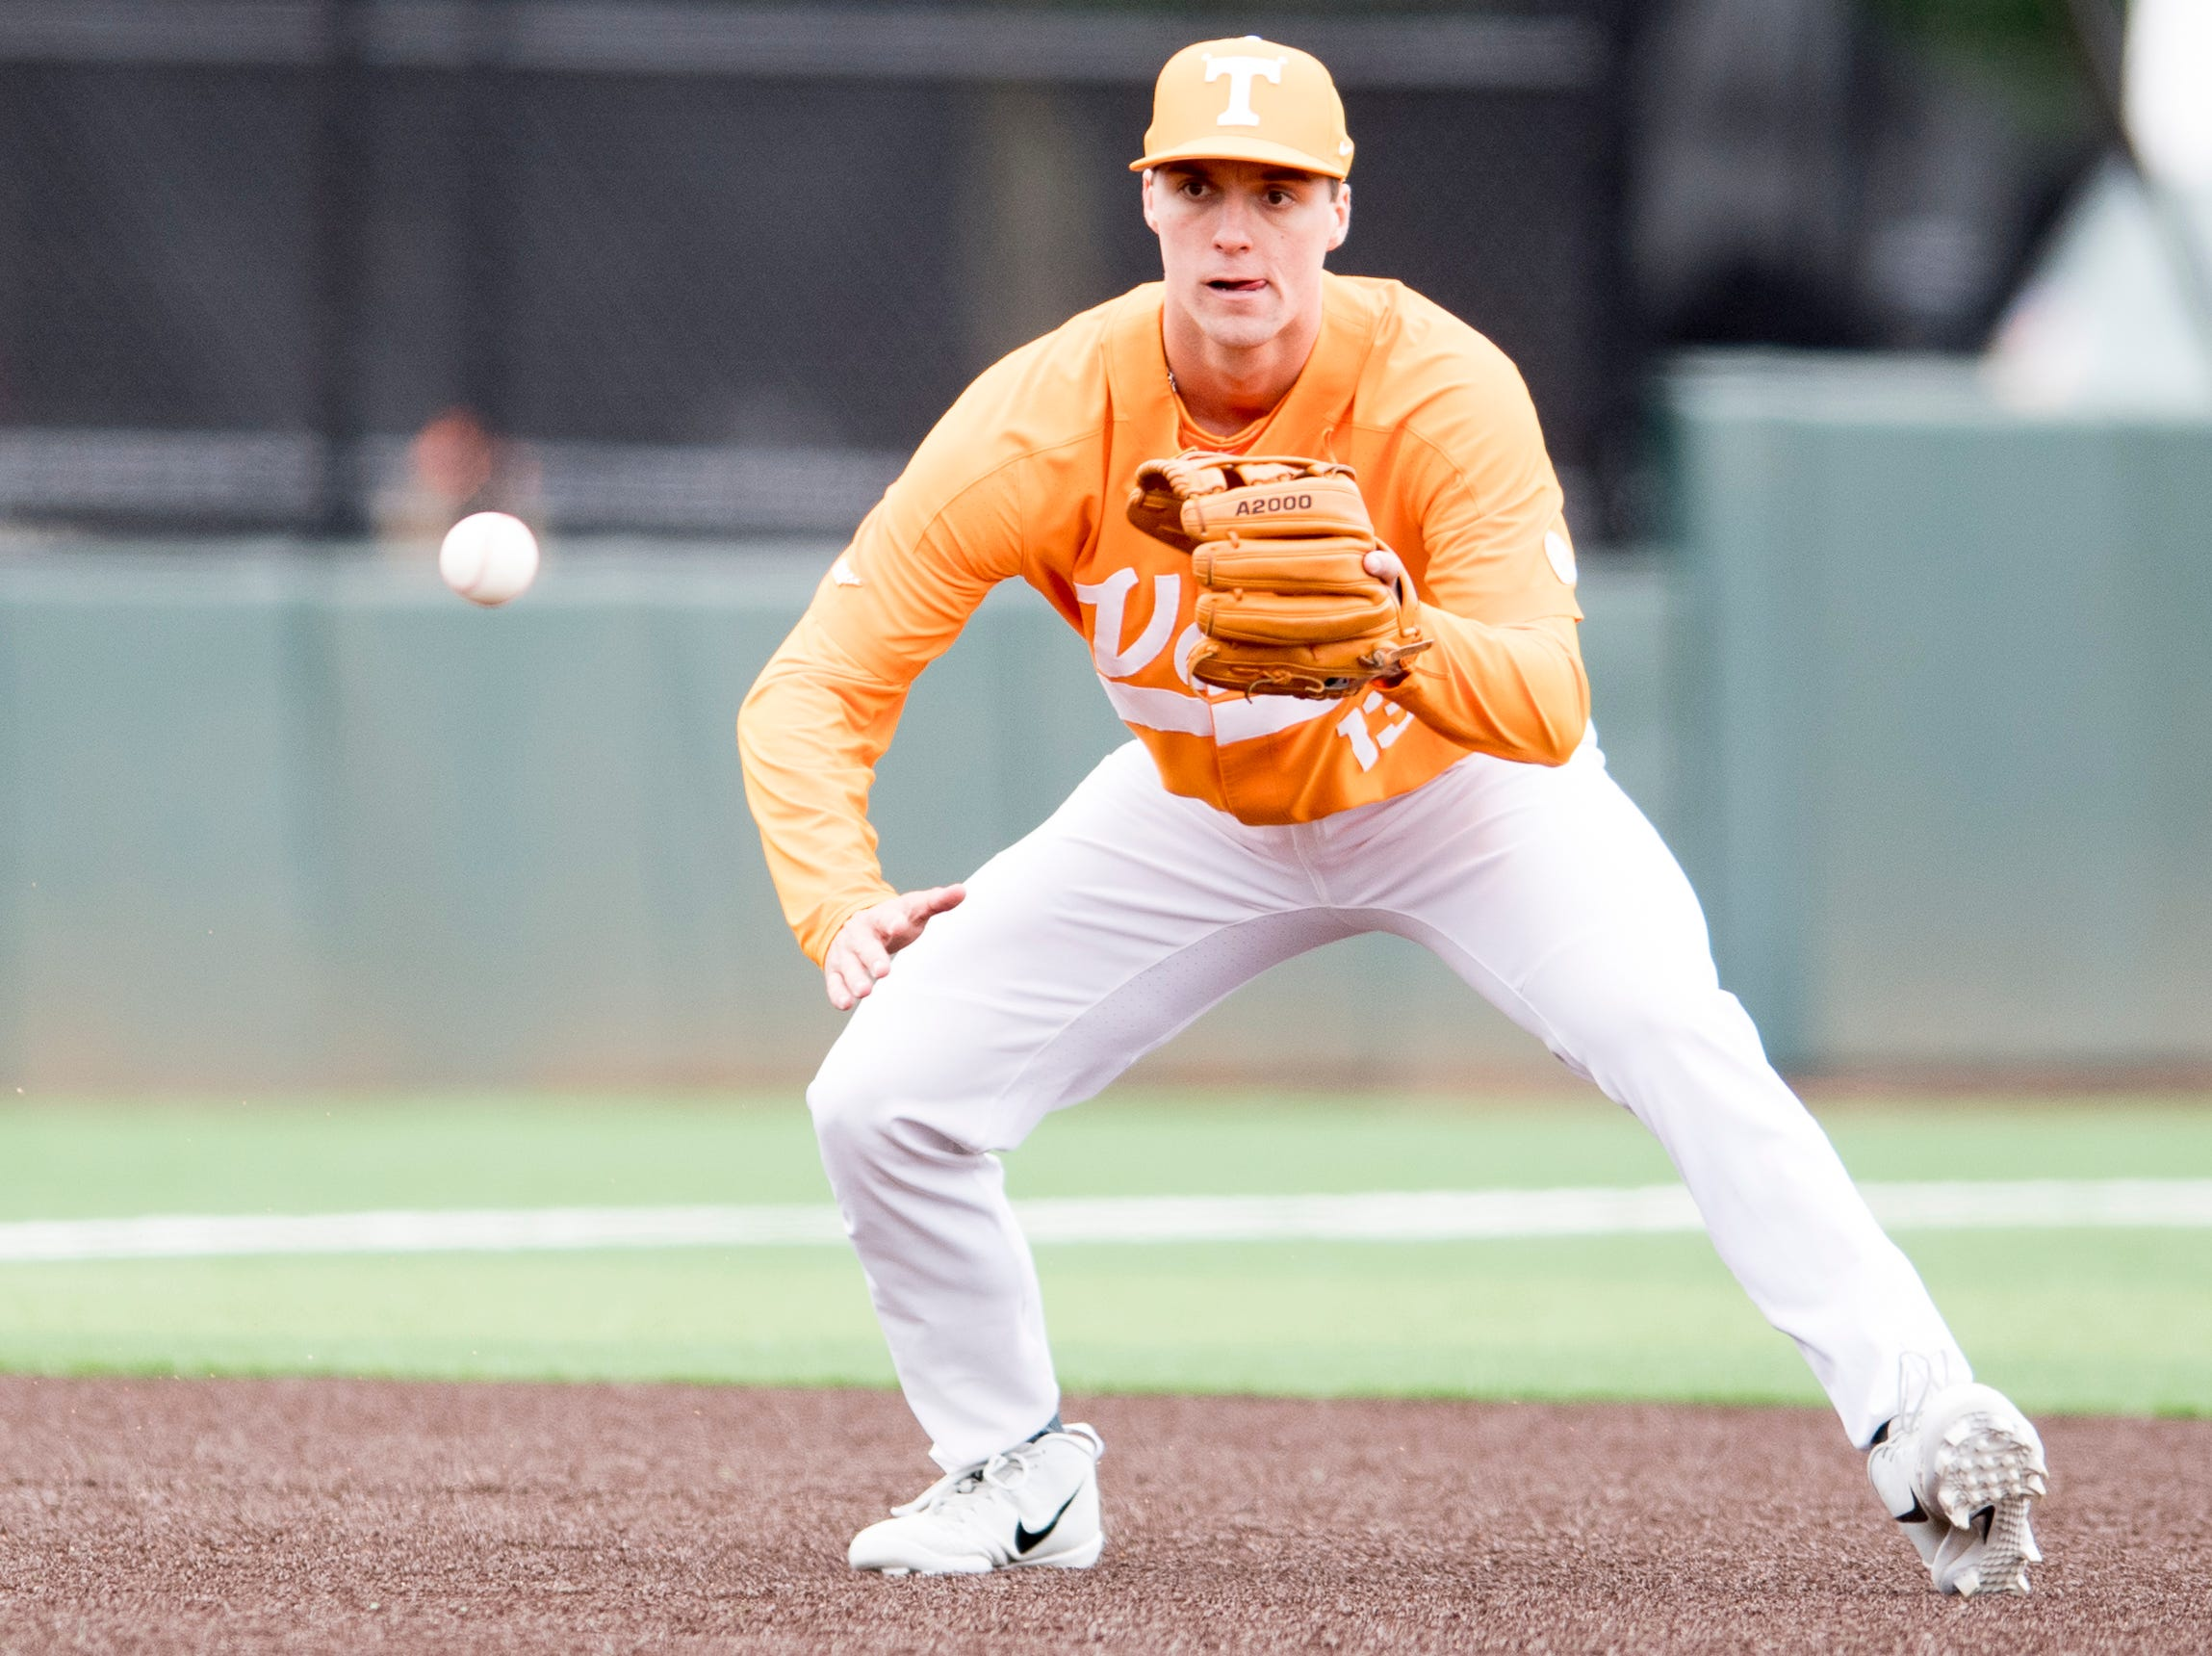 Tennessee infielder Andre Lipcius (13) eyes an incoming hit into left field during a Tennessee baseball home opener game against Appalachian State at Lindsey Nelson Stadium in Knoxville, Tennessee on Saturday, February 16, 2019.